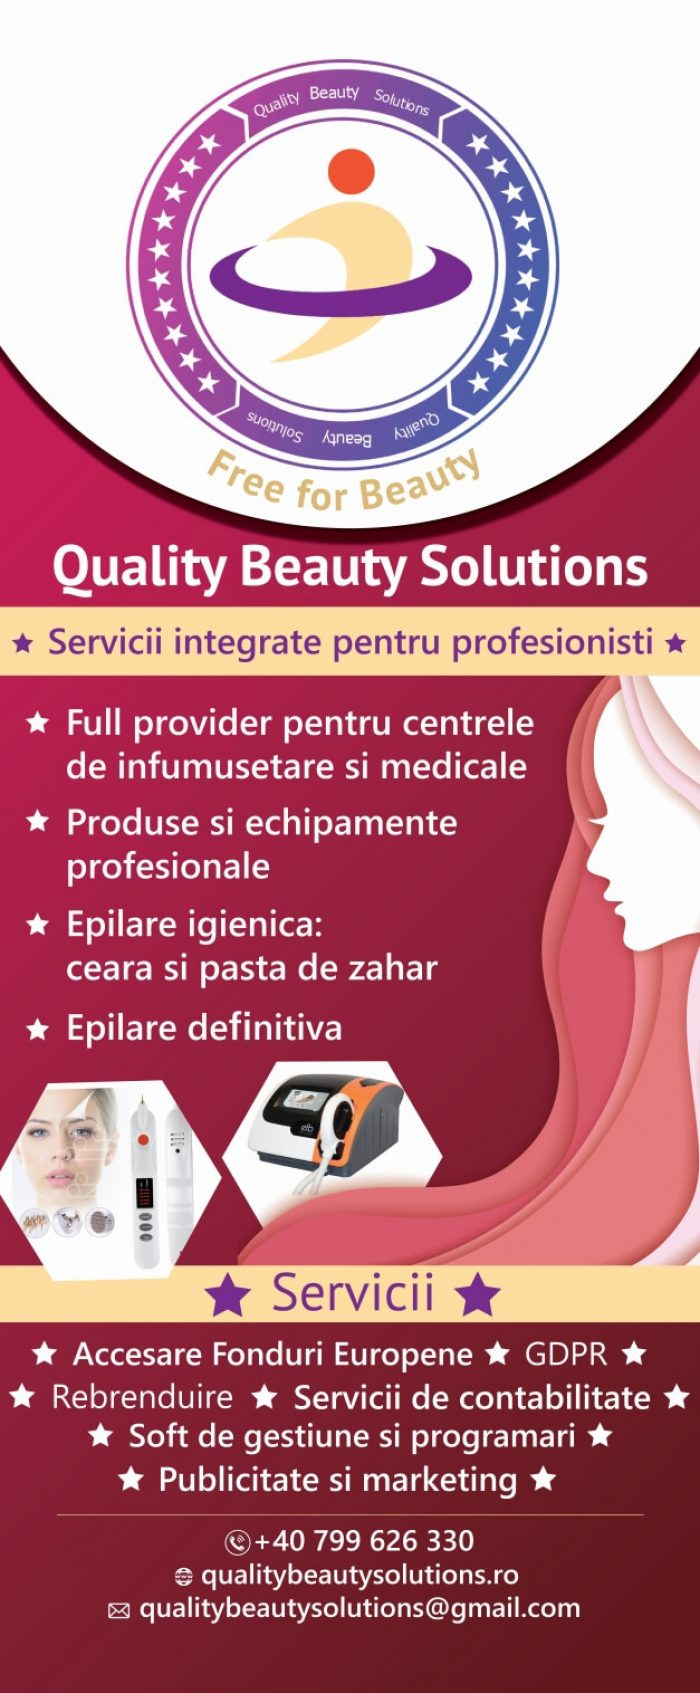 Grafica Roll UP 85x200 cm Quality Beauty Solution